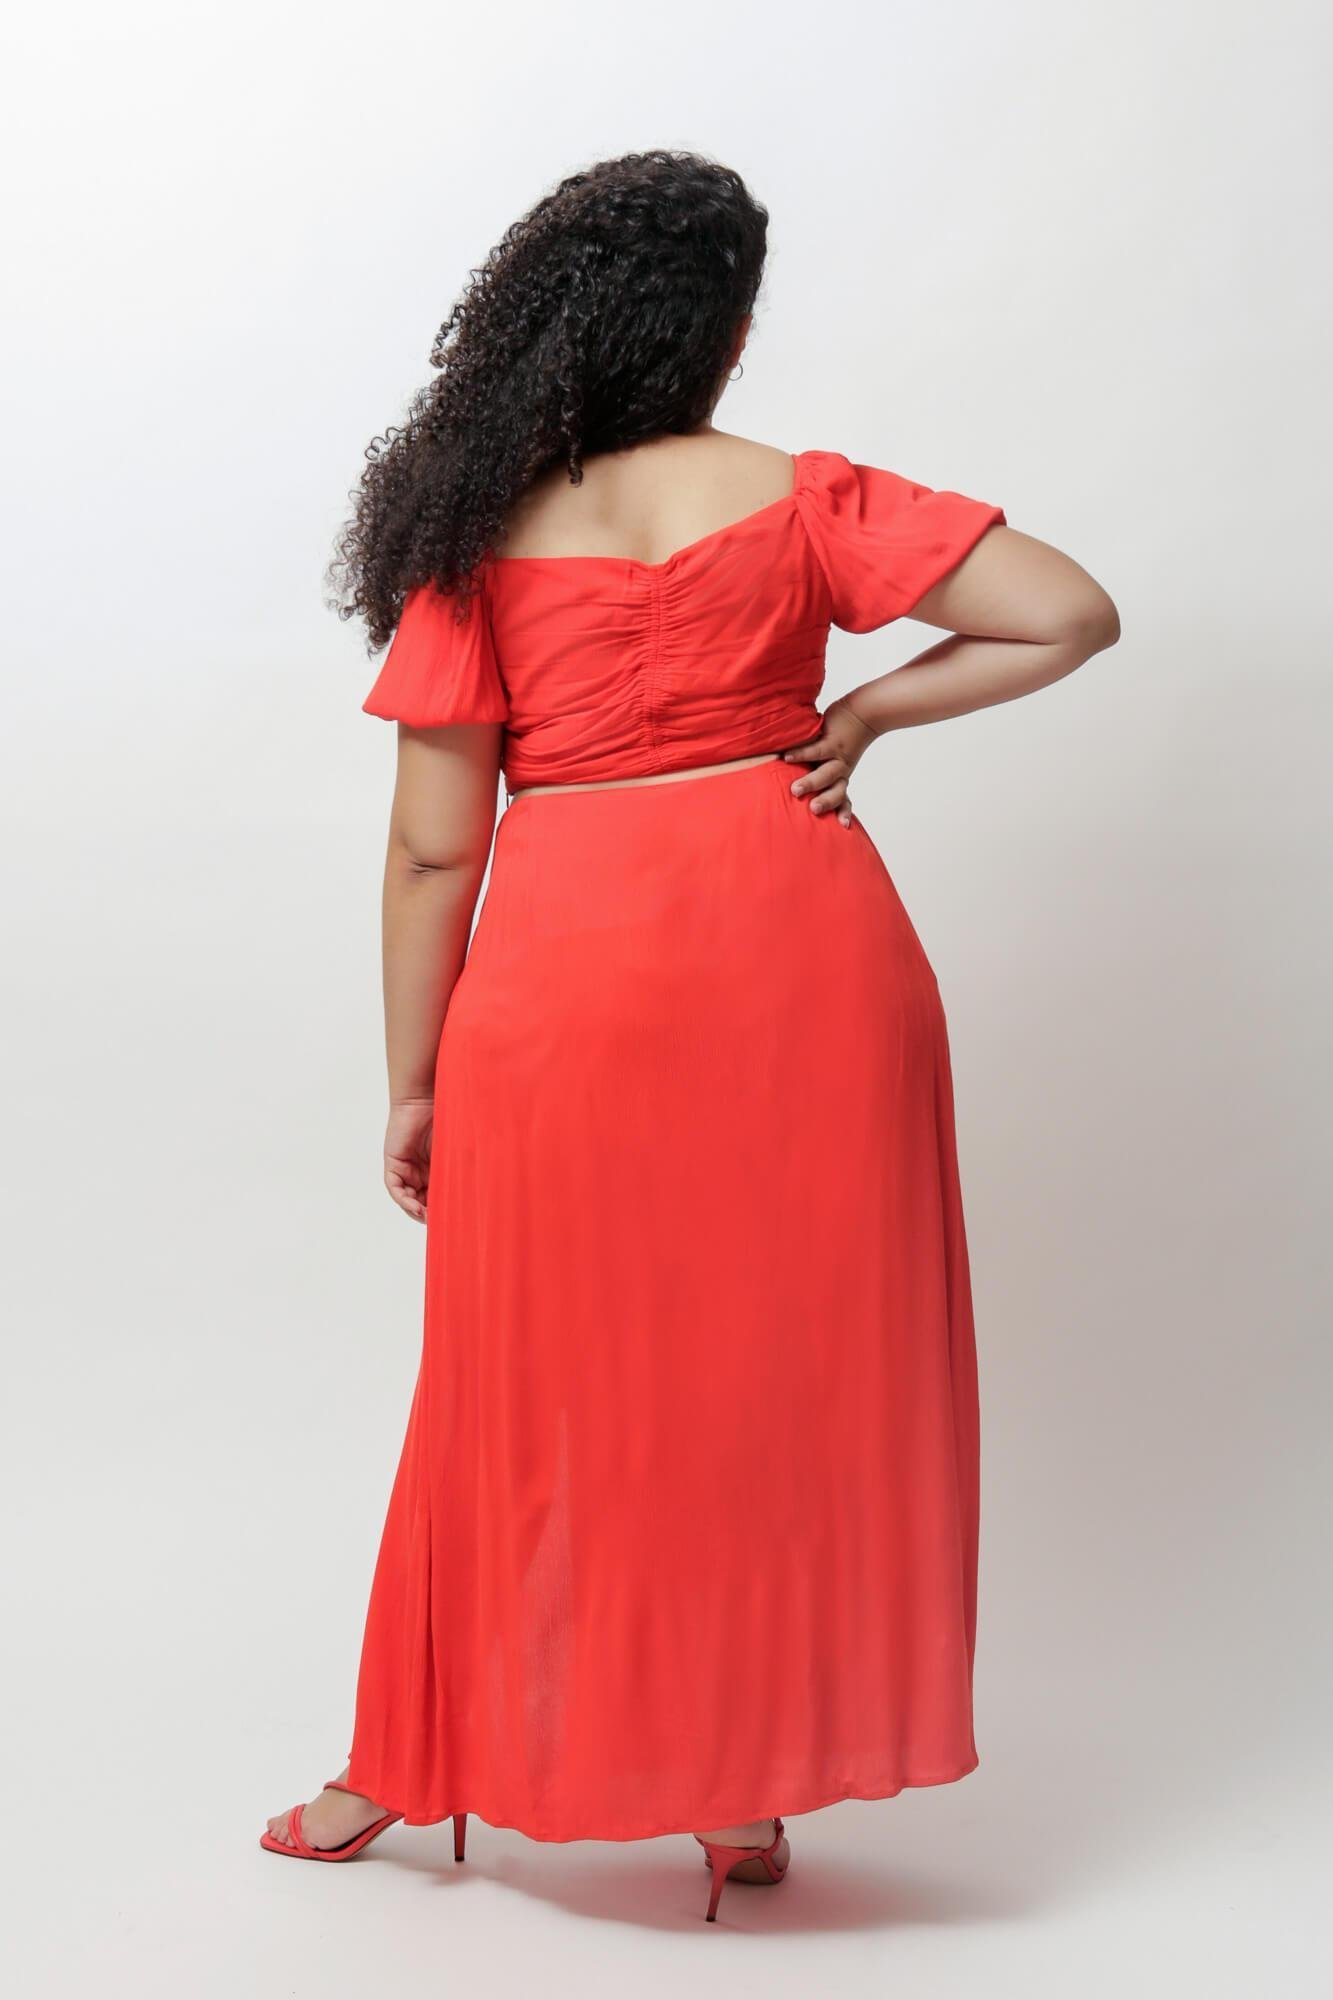 Fiery Red Cindy Crop Top and Skirt Two Piece Set 5